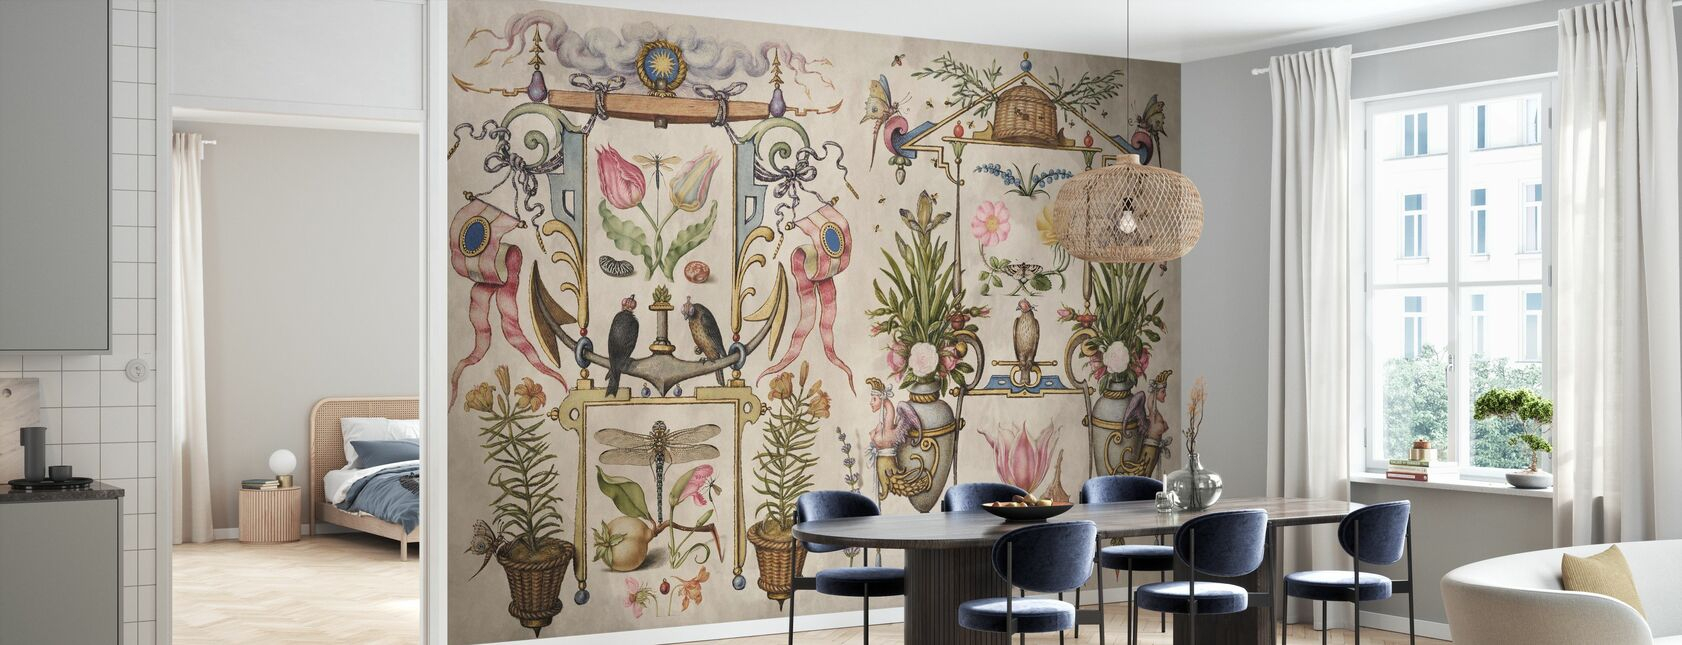 Painted Wall - Living Entity - Wallpaper - Kitchen